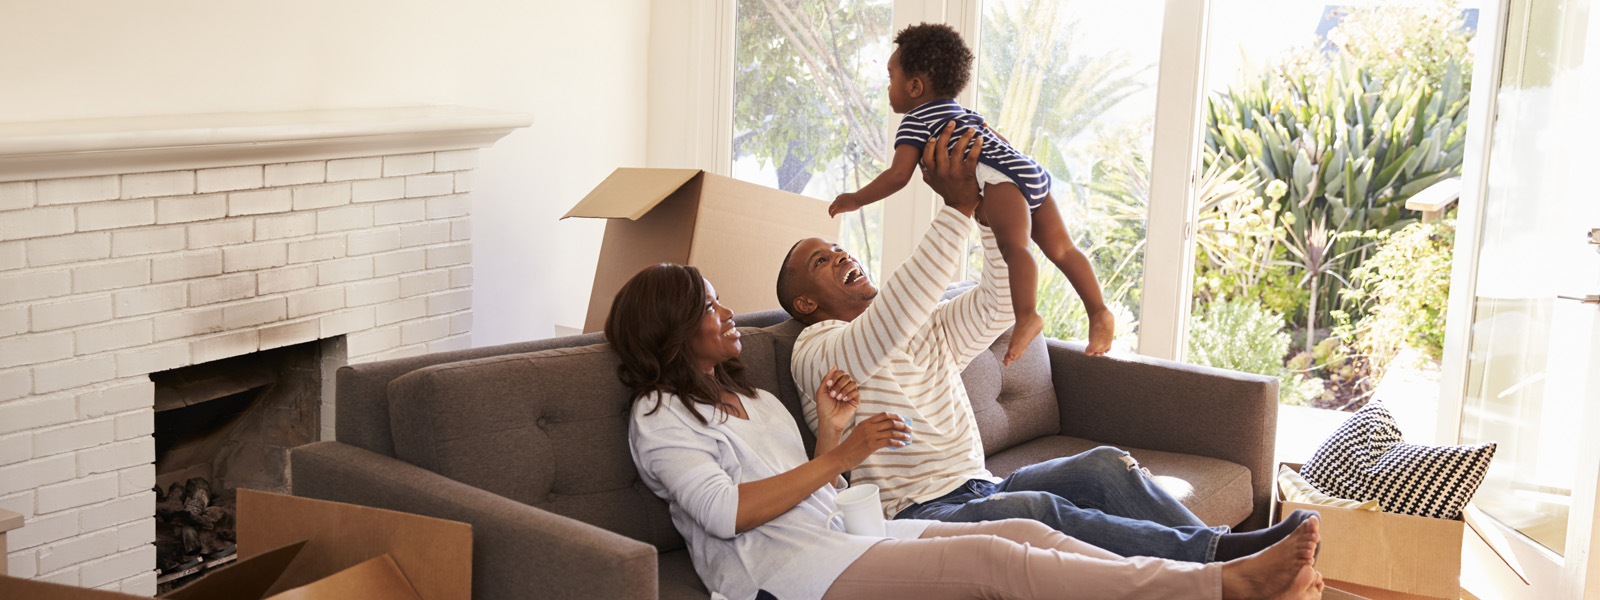 family in living room playing with and holding child above their heads